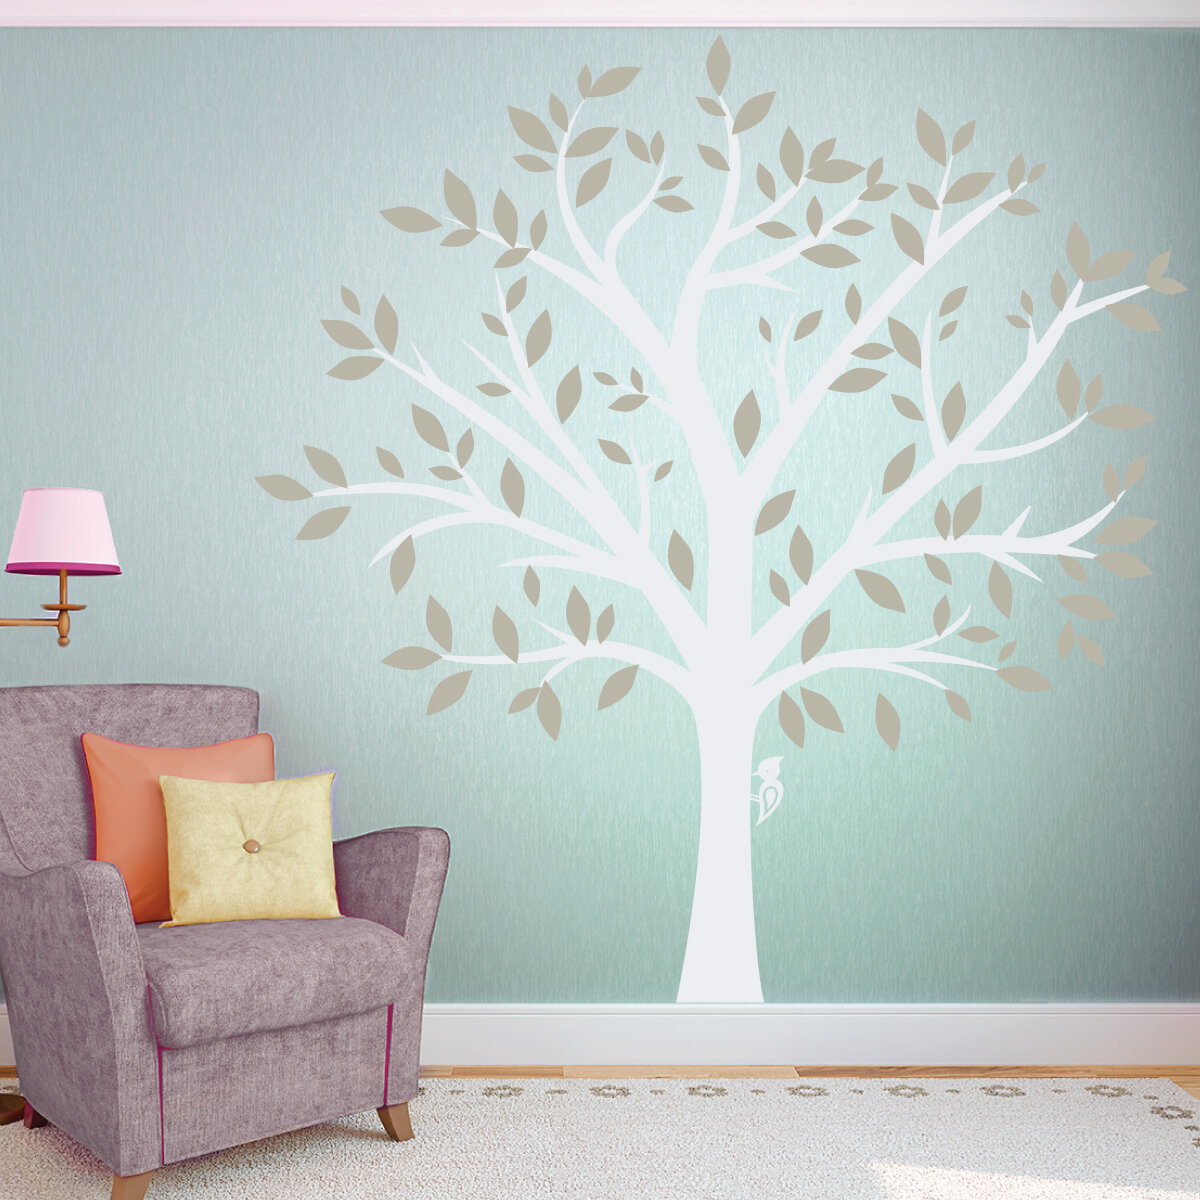 Wallums Wall Decor Large Family Tree Wall Decal U0026 Reviews | Wayfair